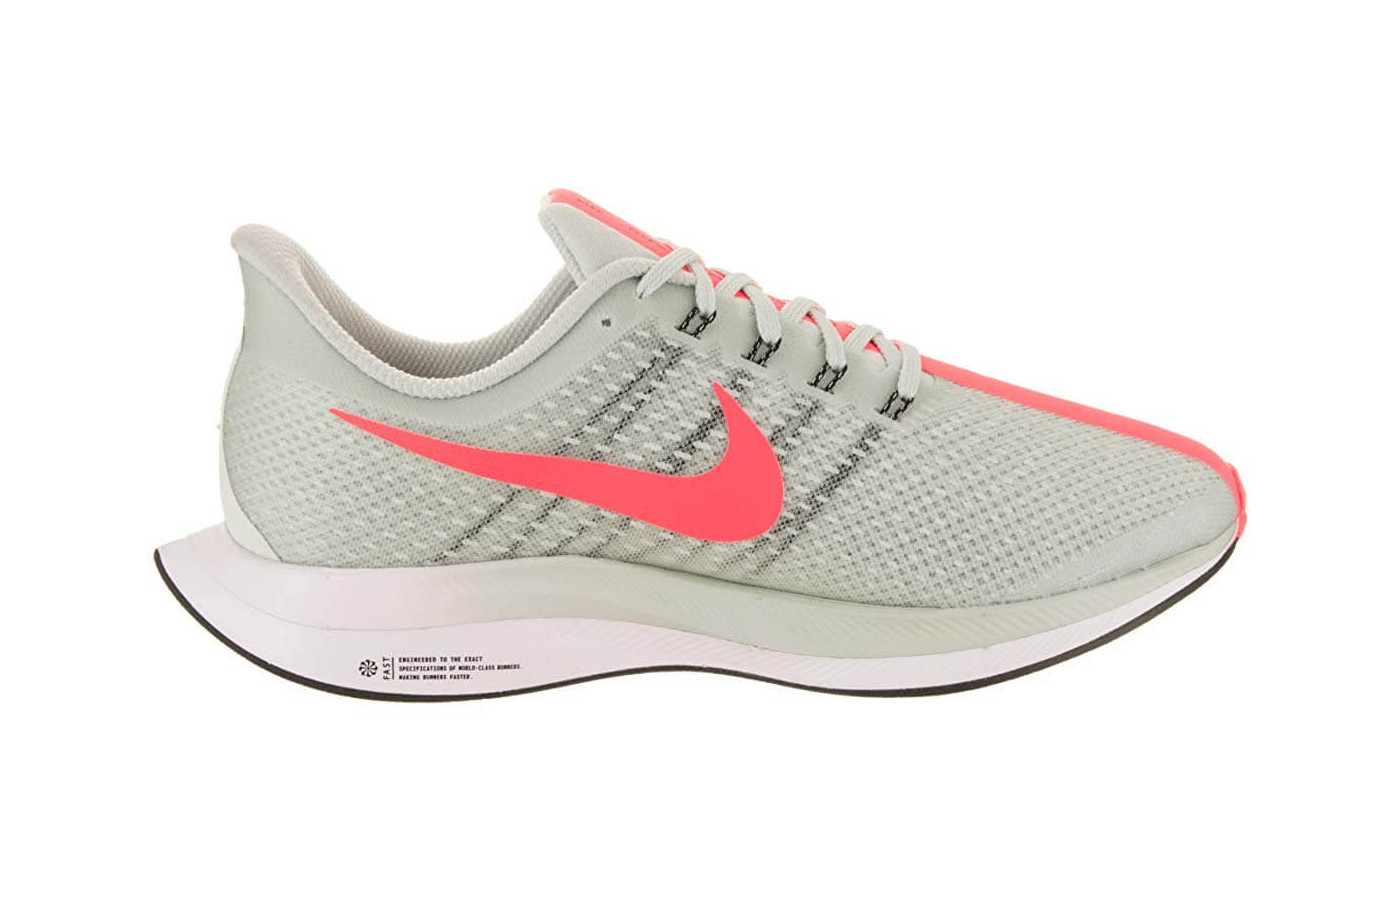 Its translucent mesh upper gives the Zoom Pegasus Turbo increased breathability.